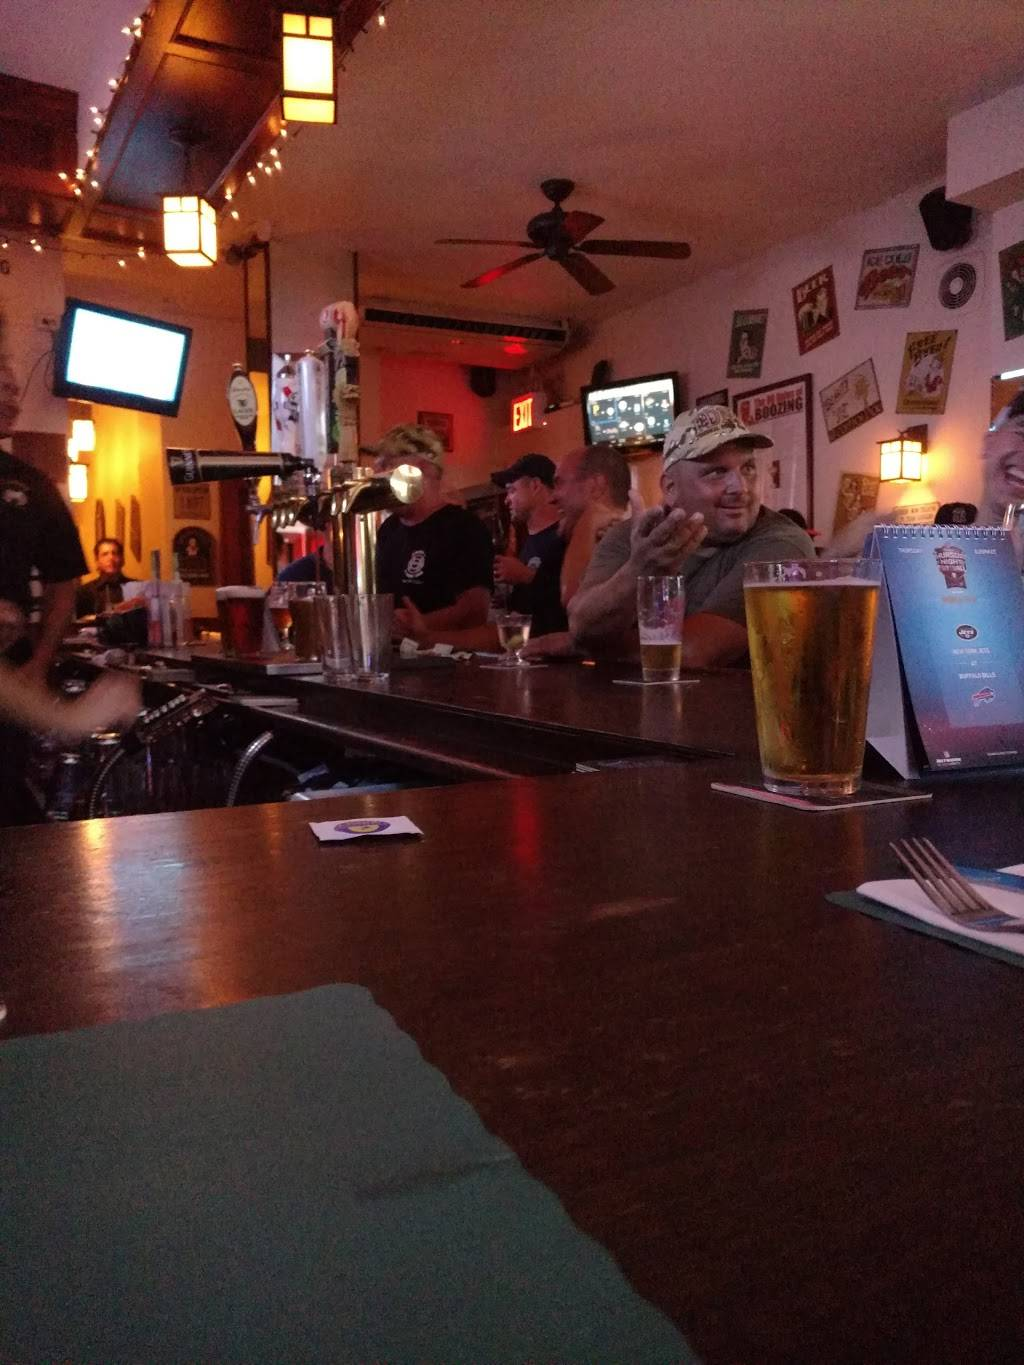 Dillingers Pub & Grill   restaurant   4619 30th Ave, Astoria, NY 11103, USA   7189565601 OR +1 718-956-5601